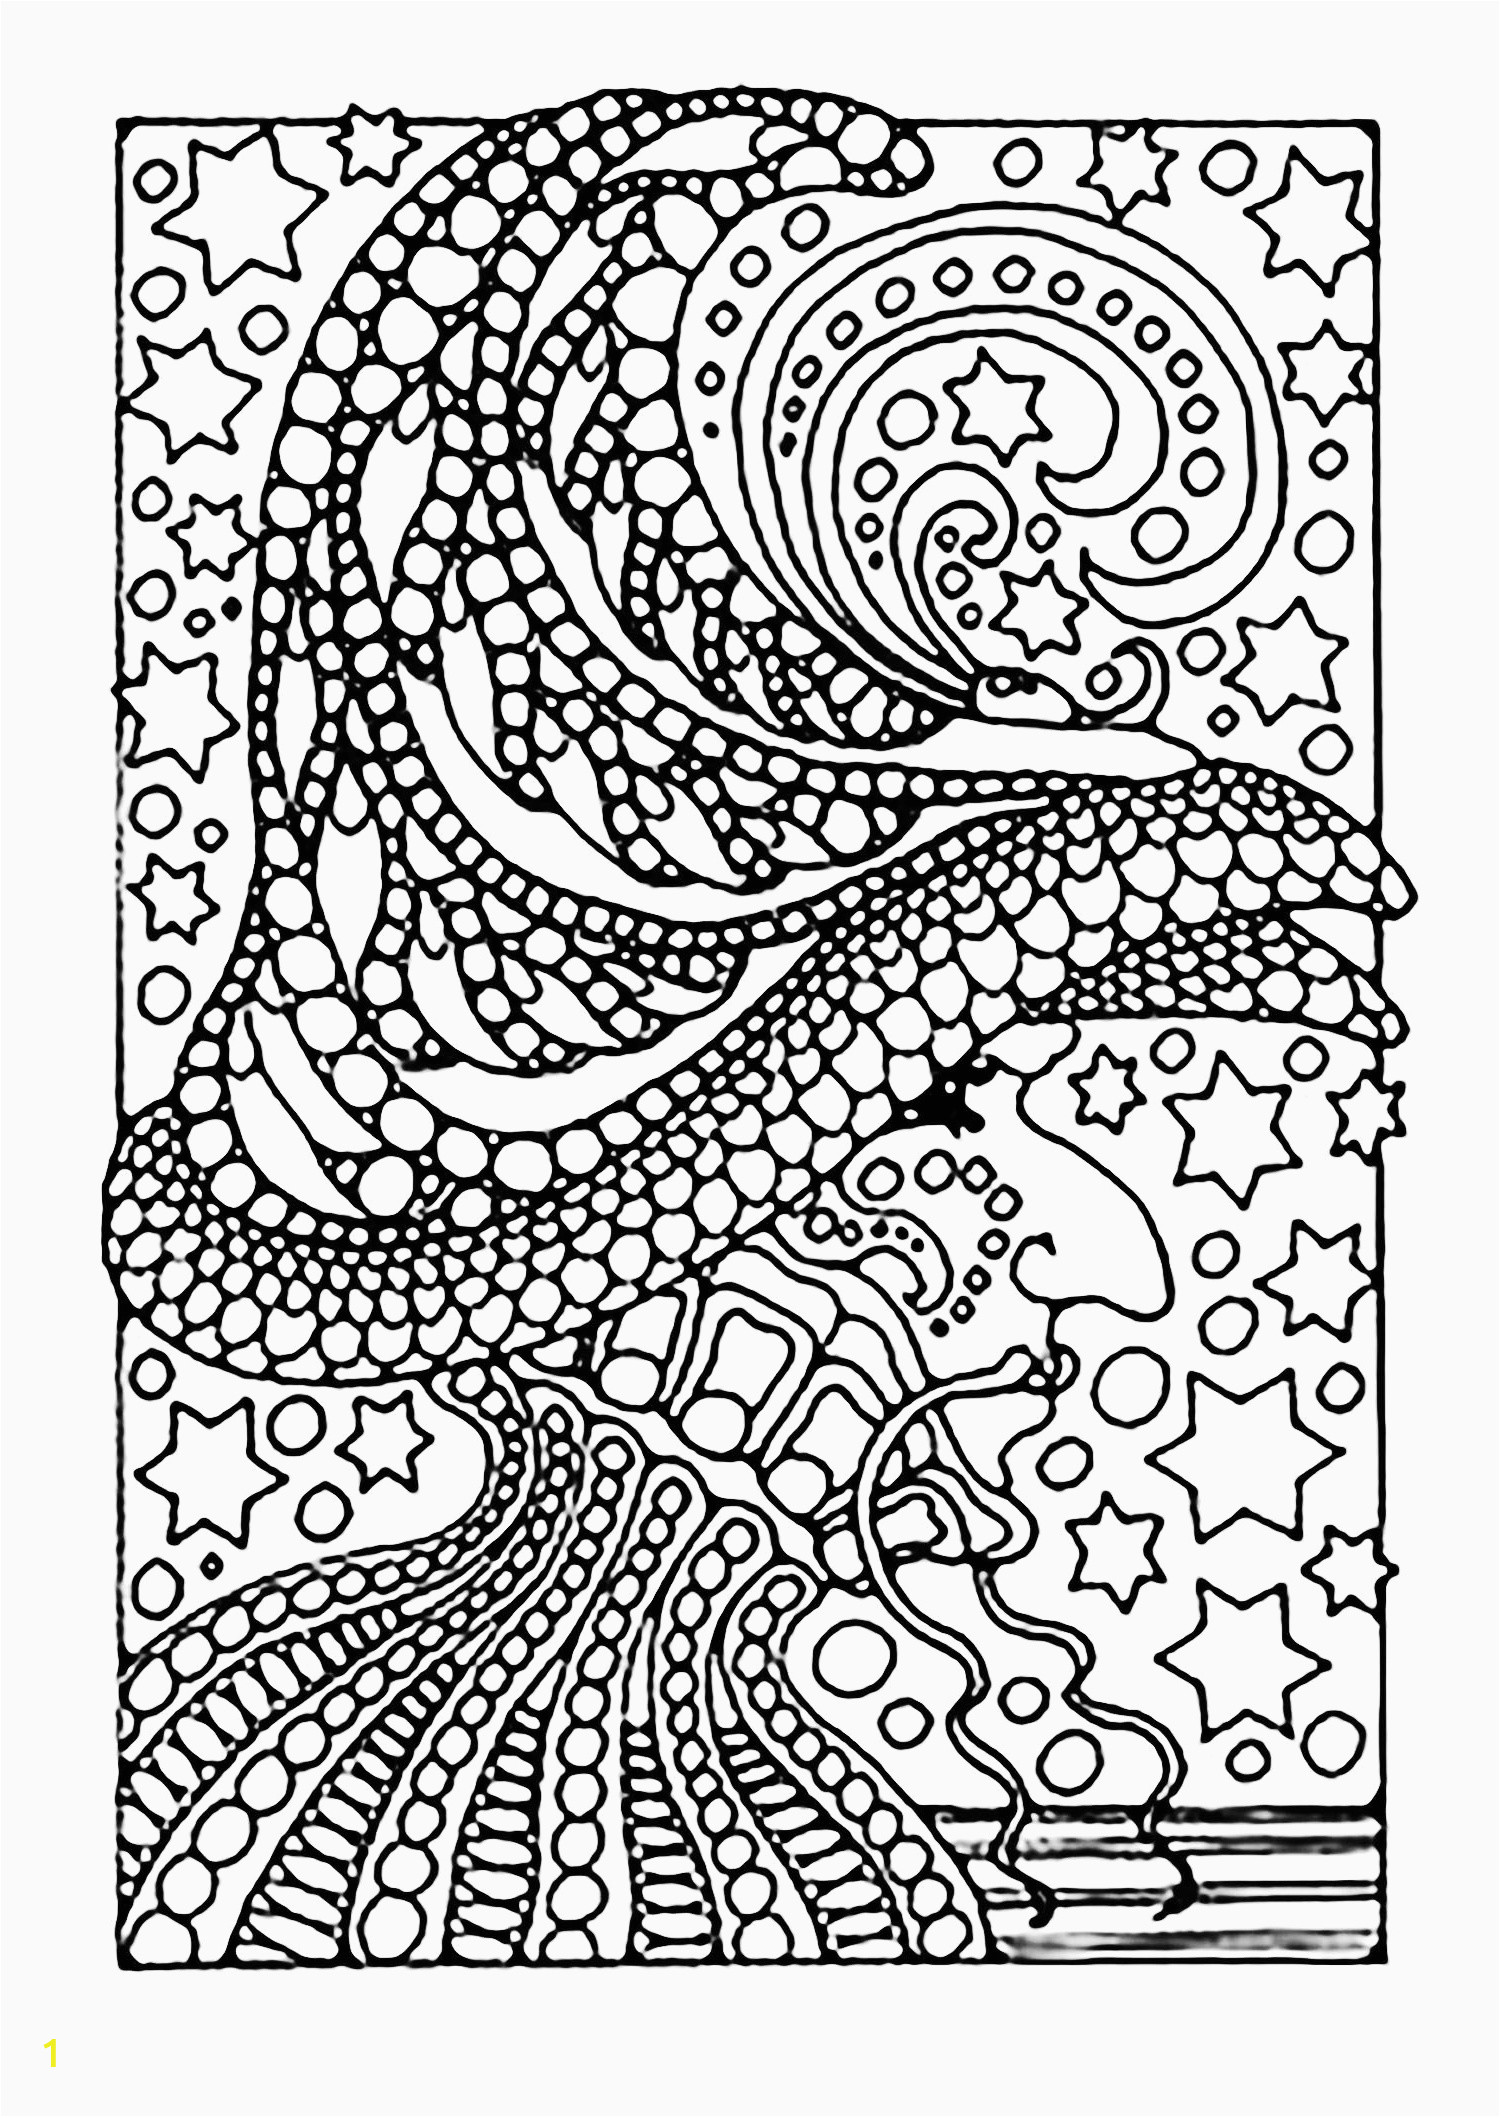 dad coloring page to print inspirational images cool coloring page unique witch coloring pages new crayola pages 0d of dad coloring page to print